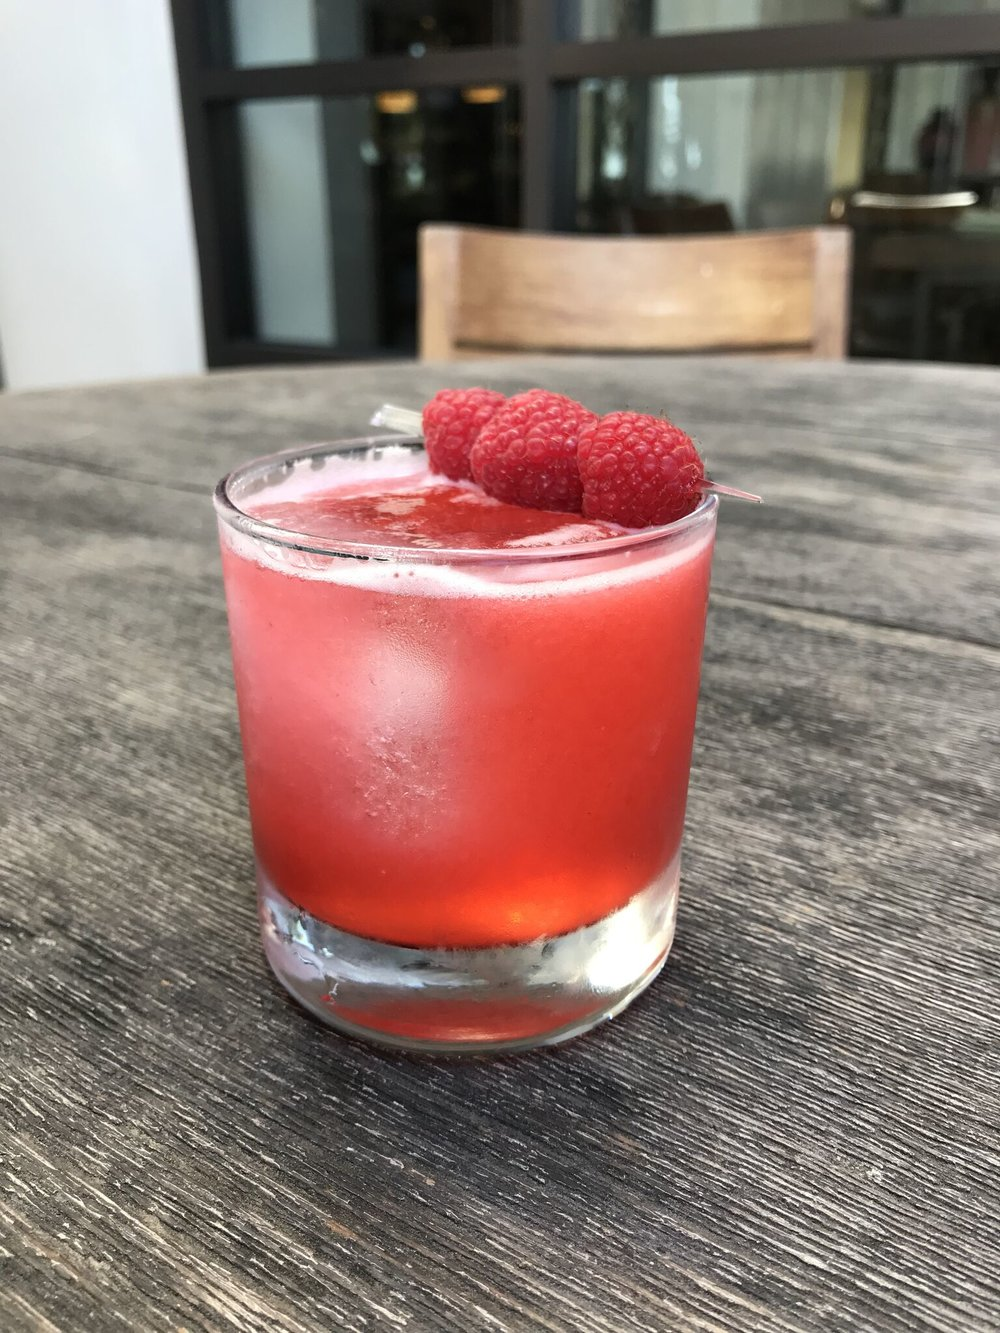 A raspberry colored cocktail sitting on a table.